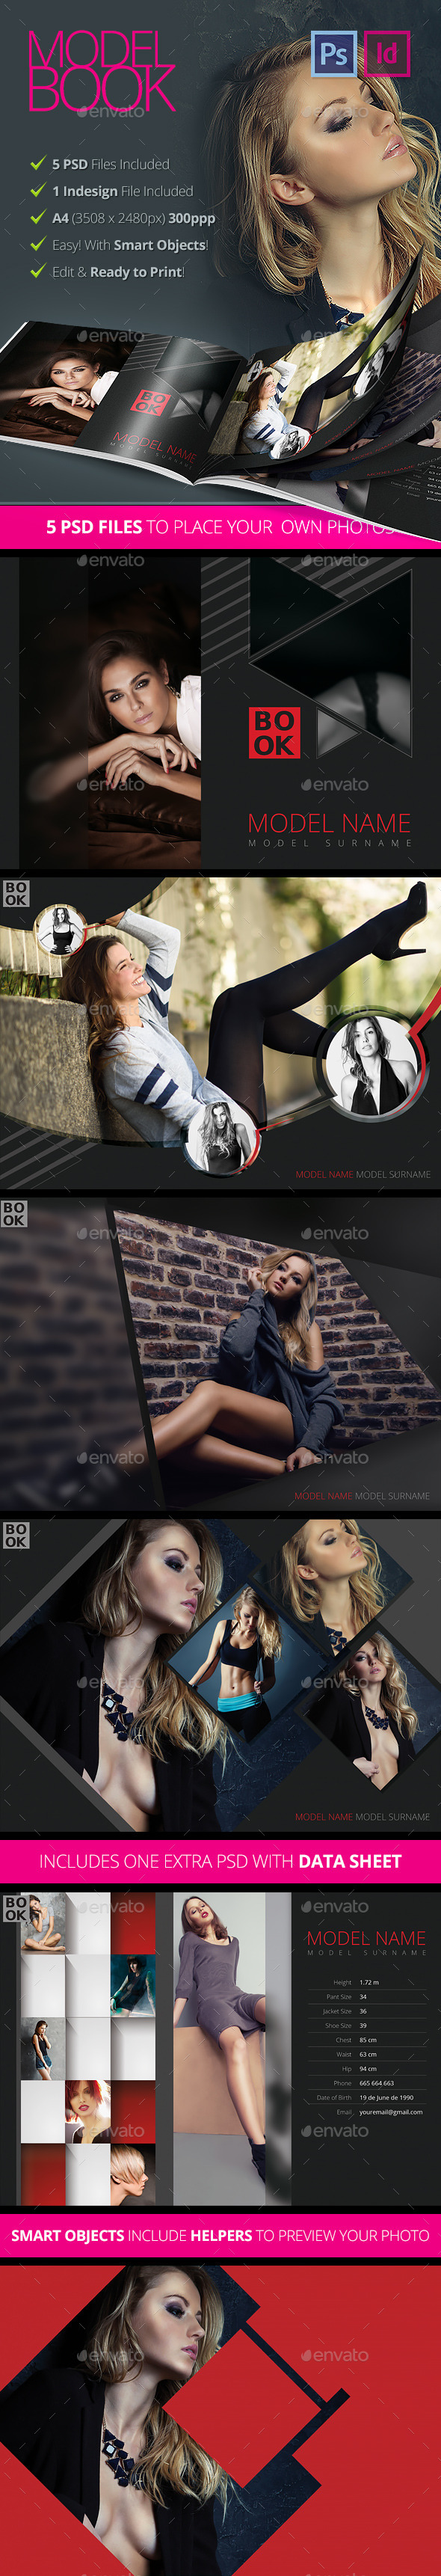 GraphicRiver Model Book Design Brochure 10686621